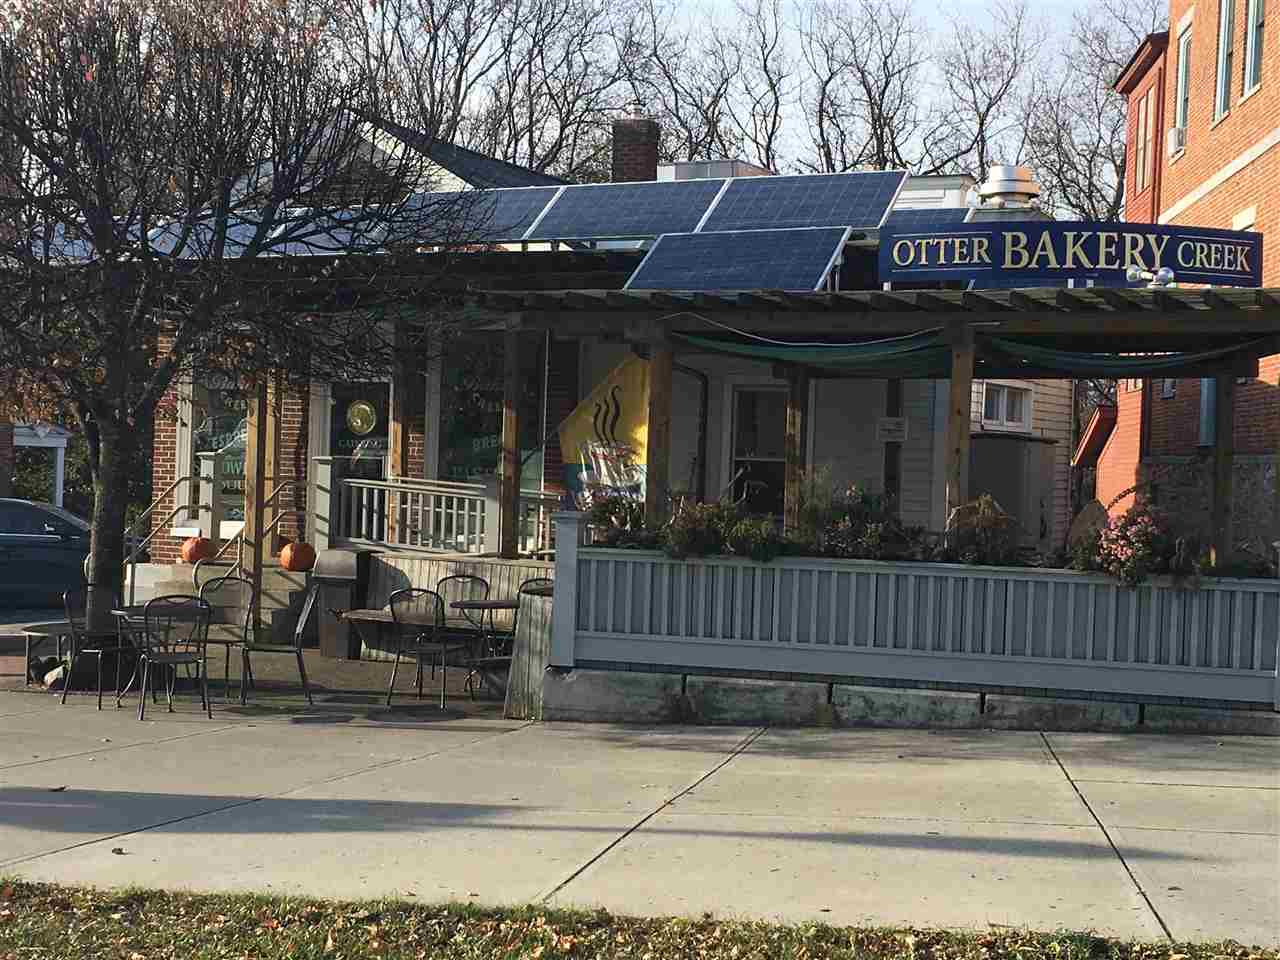 Mention the name, Otter Creek Bakery, and the response will be accolades and smiles every time.  This iconic downtown Middlebury hub is a pillar of the community.  Its reputation is stellar and its role well cemented in the minds of all who have lived in Middlebury over the past thirty years.    On the main thoroughfare in the heart of downtown, Middlebury, this little bakery is hard to top!   Hand crafted products with local ingredients provide a food emporium, from lattes to pate!  The bakery is always hopping, serving up deliciousness from early morning til the end of the day, seven days per week, catering to the breakfast, lunch, and afternoon espresso crowd.   The open kitchen invites social interaction and mutual affection between those in front and behind multiple display cases.  This business has won its way into the hearts of all who know it.    Behind the scenes are Ben and Sarah Wood who have owned the Bakery for three decades.  They can't say enough about the loyalty of their customers and staff.  There is love all round- in the products freshly made daily, the customers, and the staff, many of whom have been working at the bakery for years.  A new owner can expect to build on this incredible foundation but be confident that there is plenty of upside.